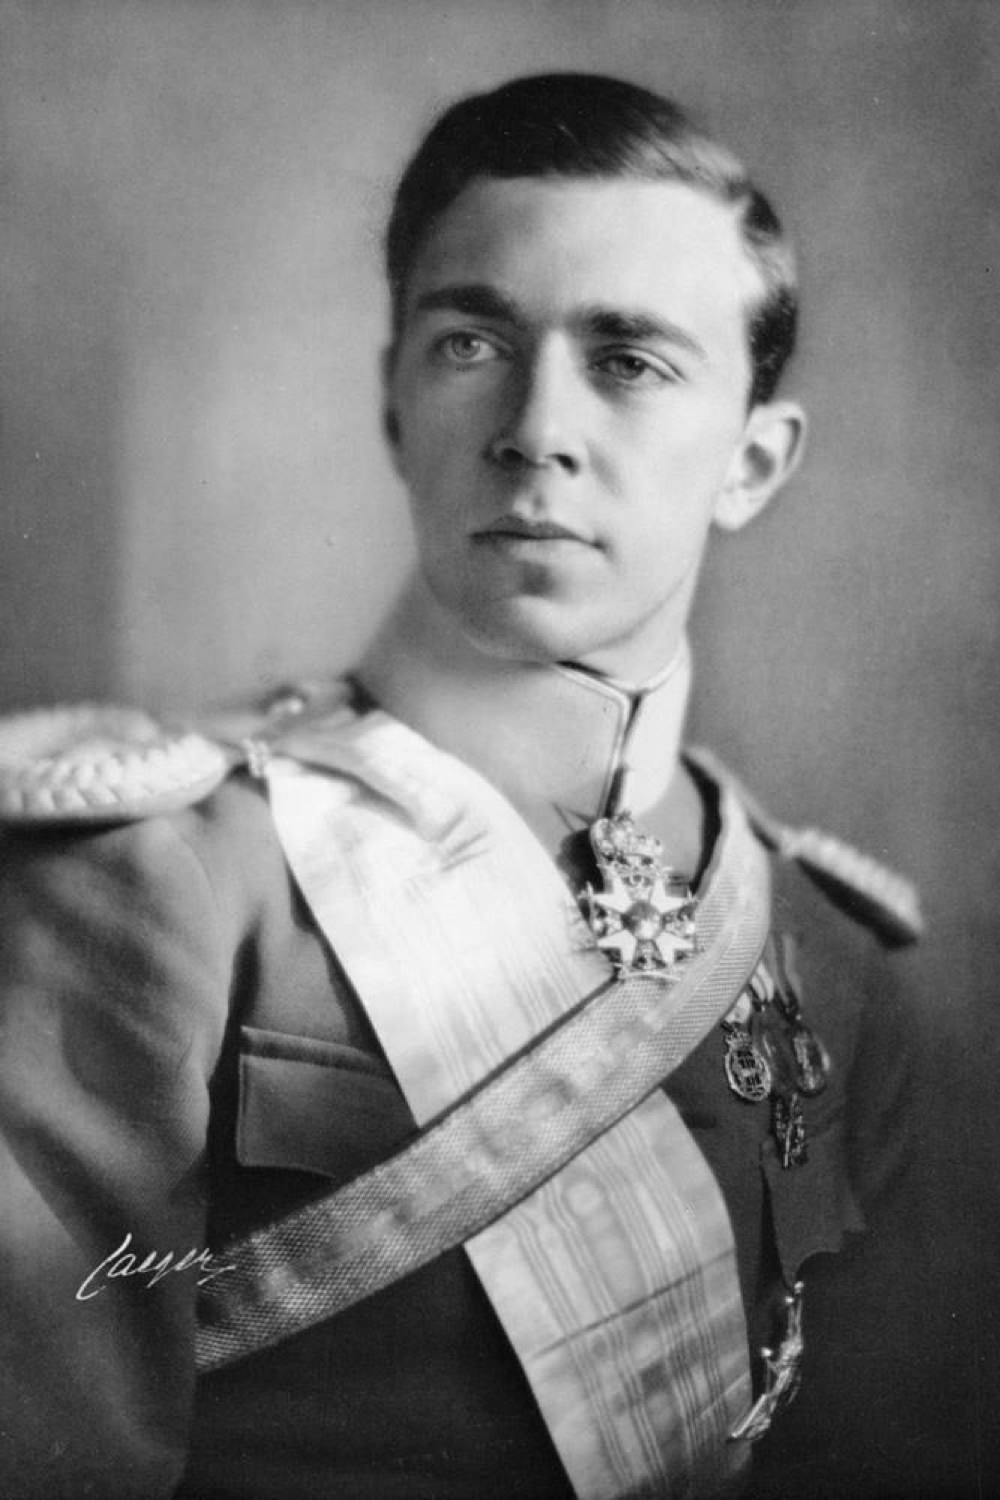 Gustaf Adolf, Duke of Västerbotten (1906-1947)